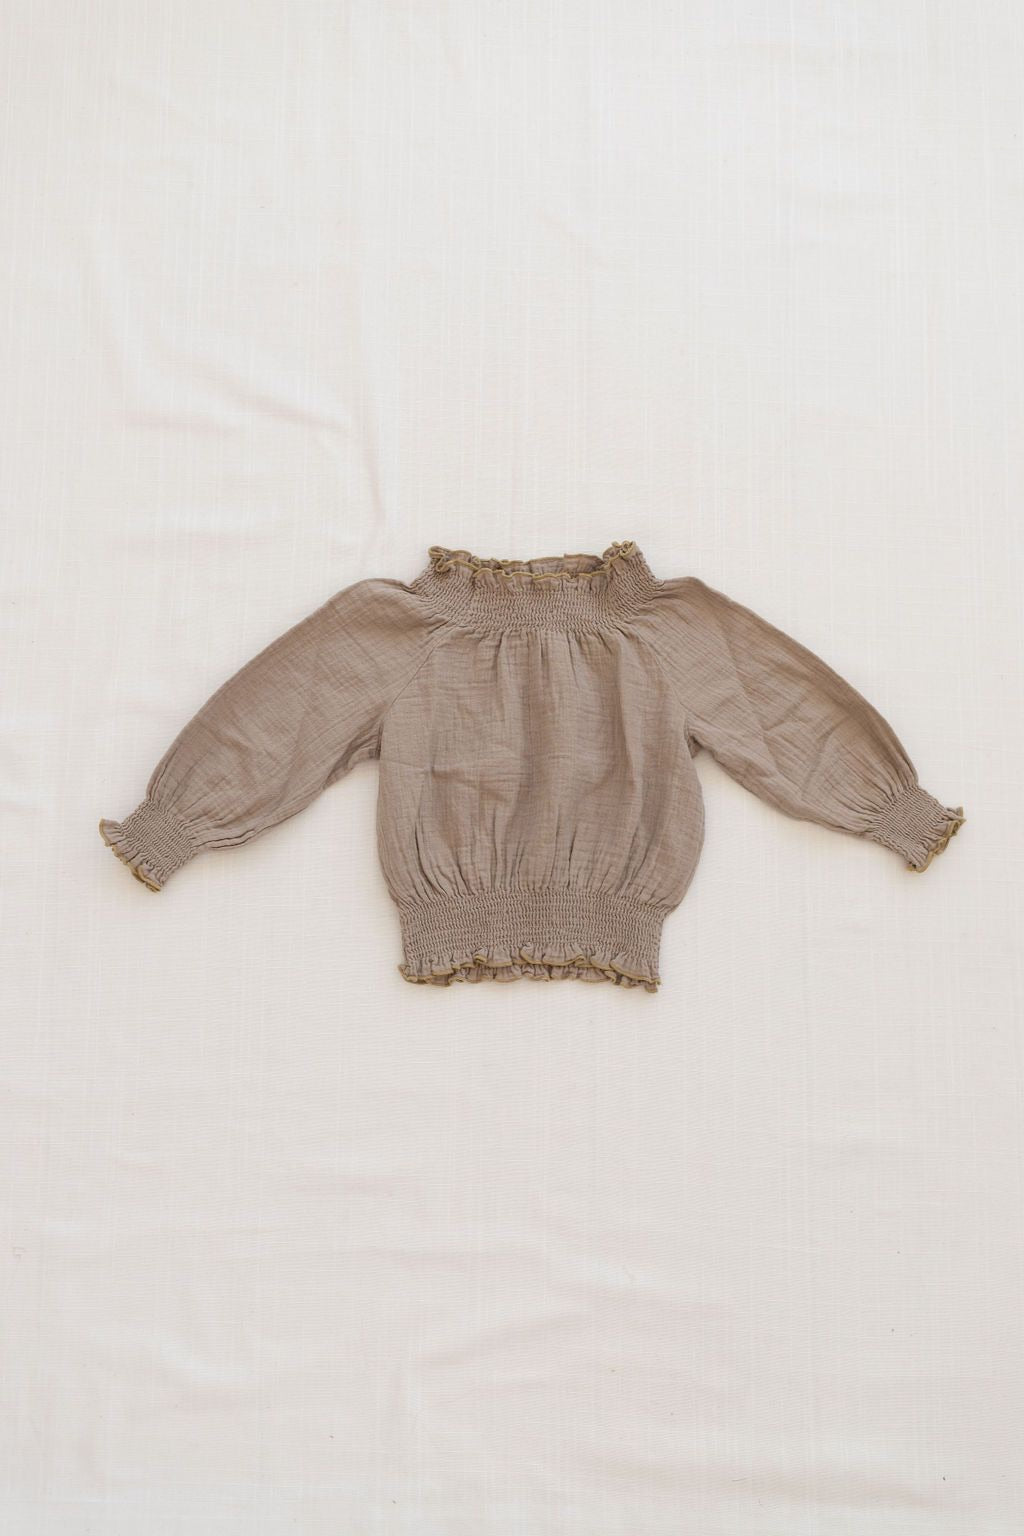 Fin & Vince smocked blouse - almond